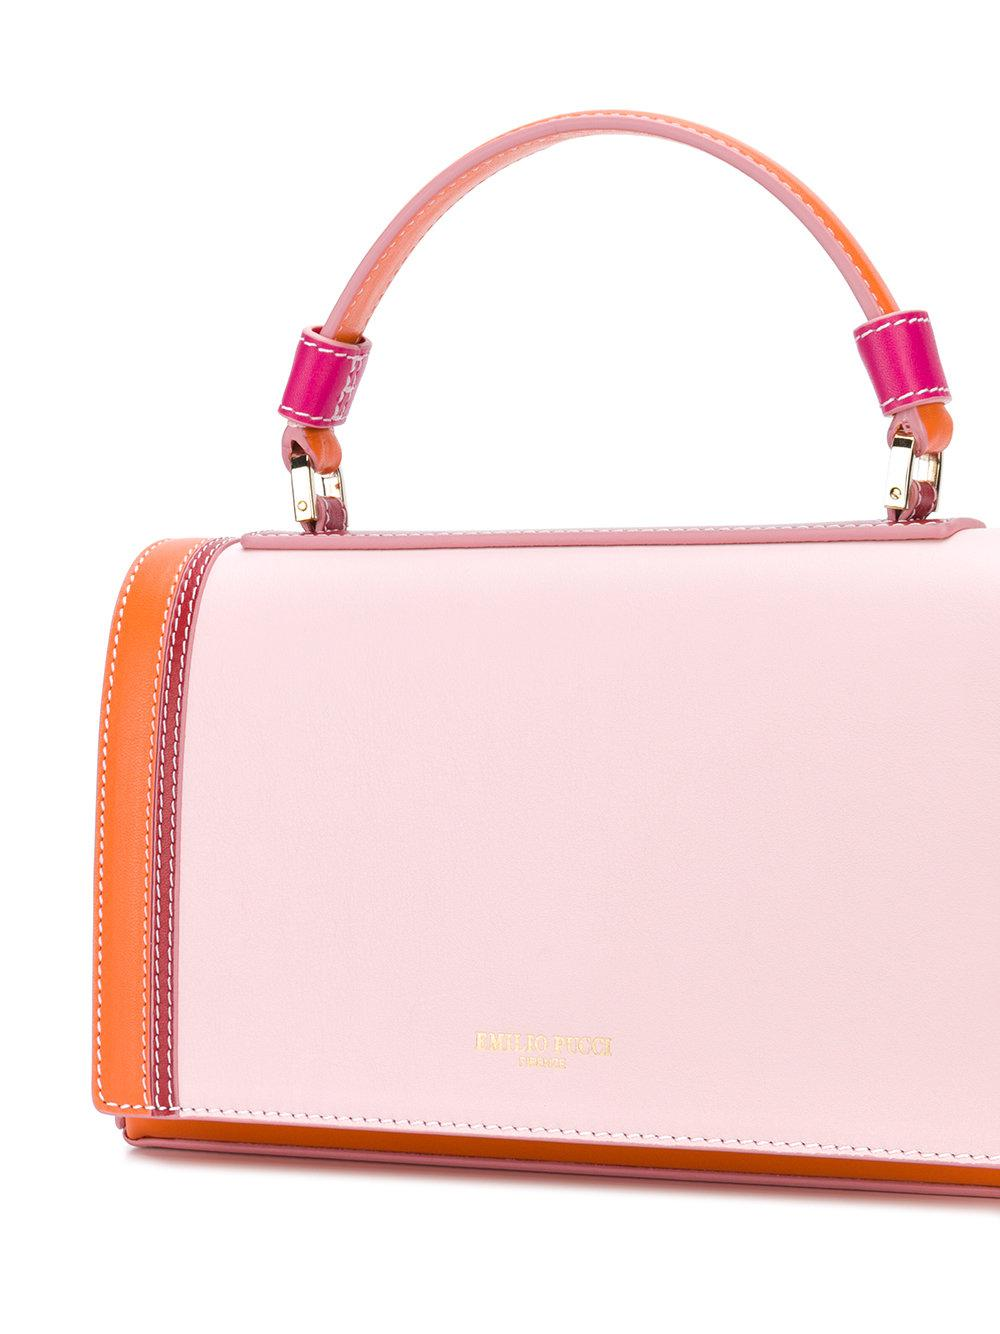 blockcolour flap tote bag - Pink & Purple Emilio Pucci